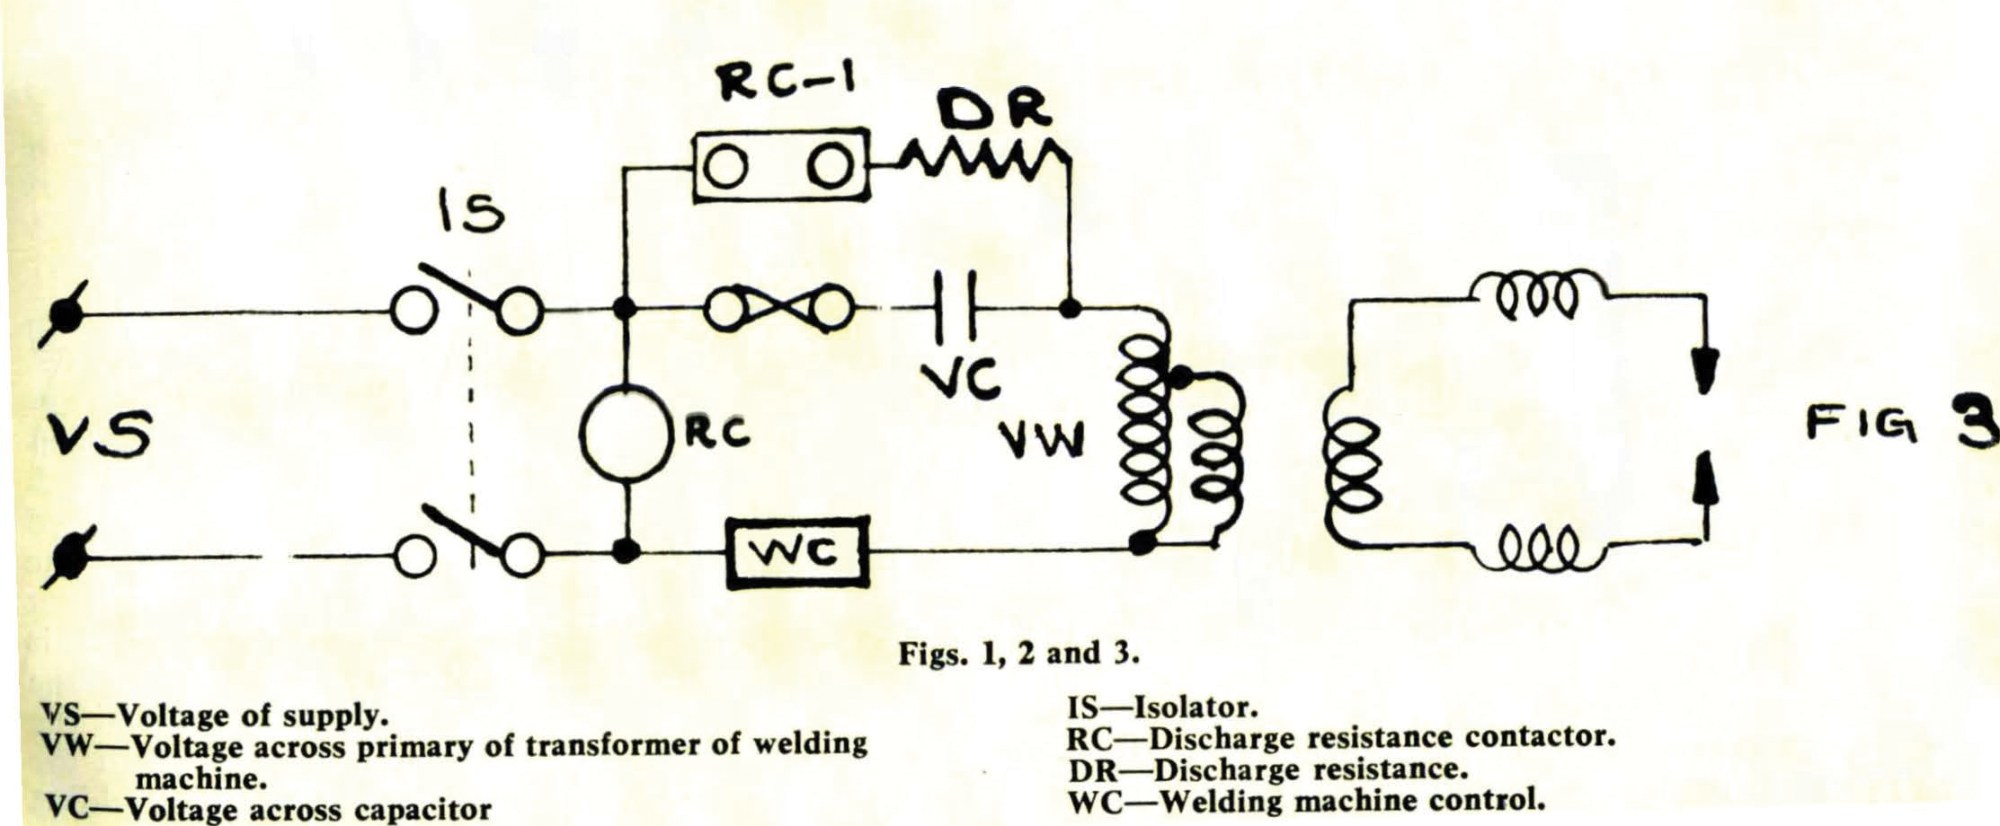 hight resolution of 3 how the circuit of an existing welding machine can be rearranged to apply a